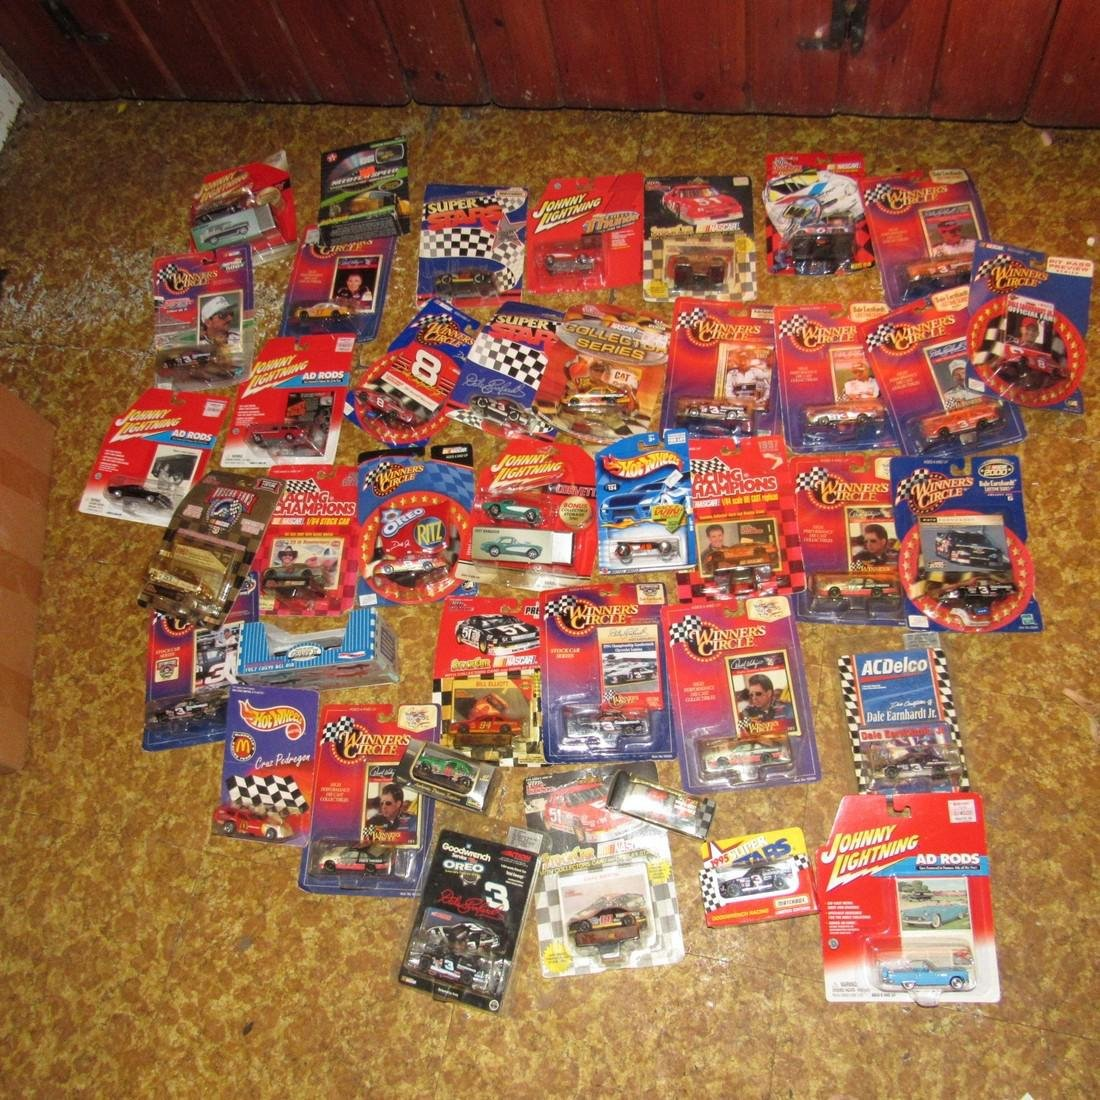 42 Diescast Nascar Racing Cars